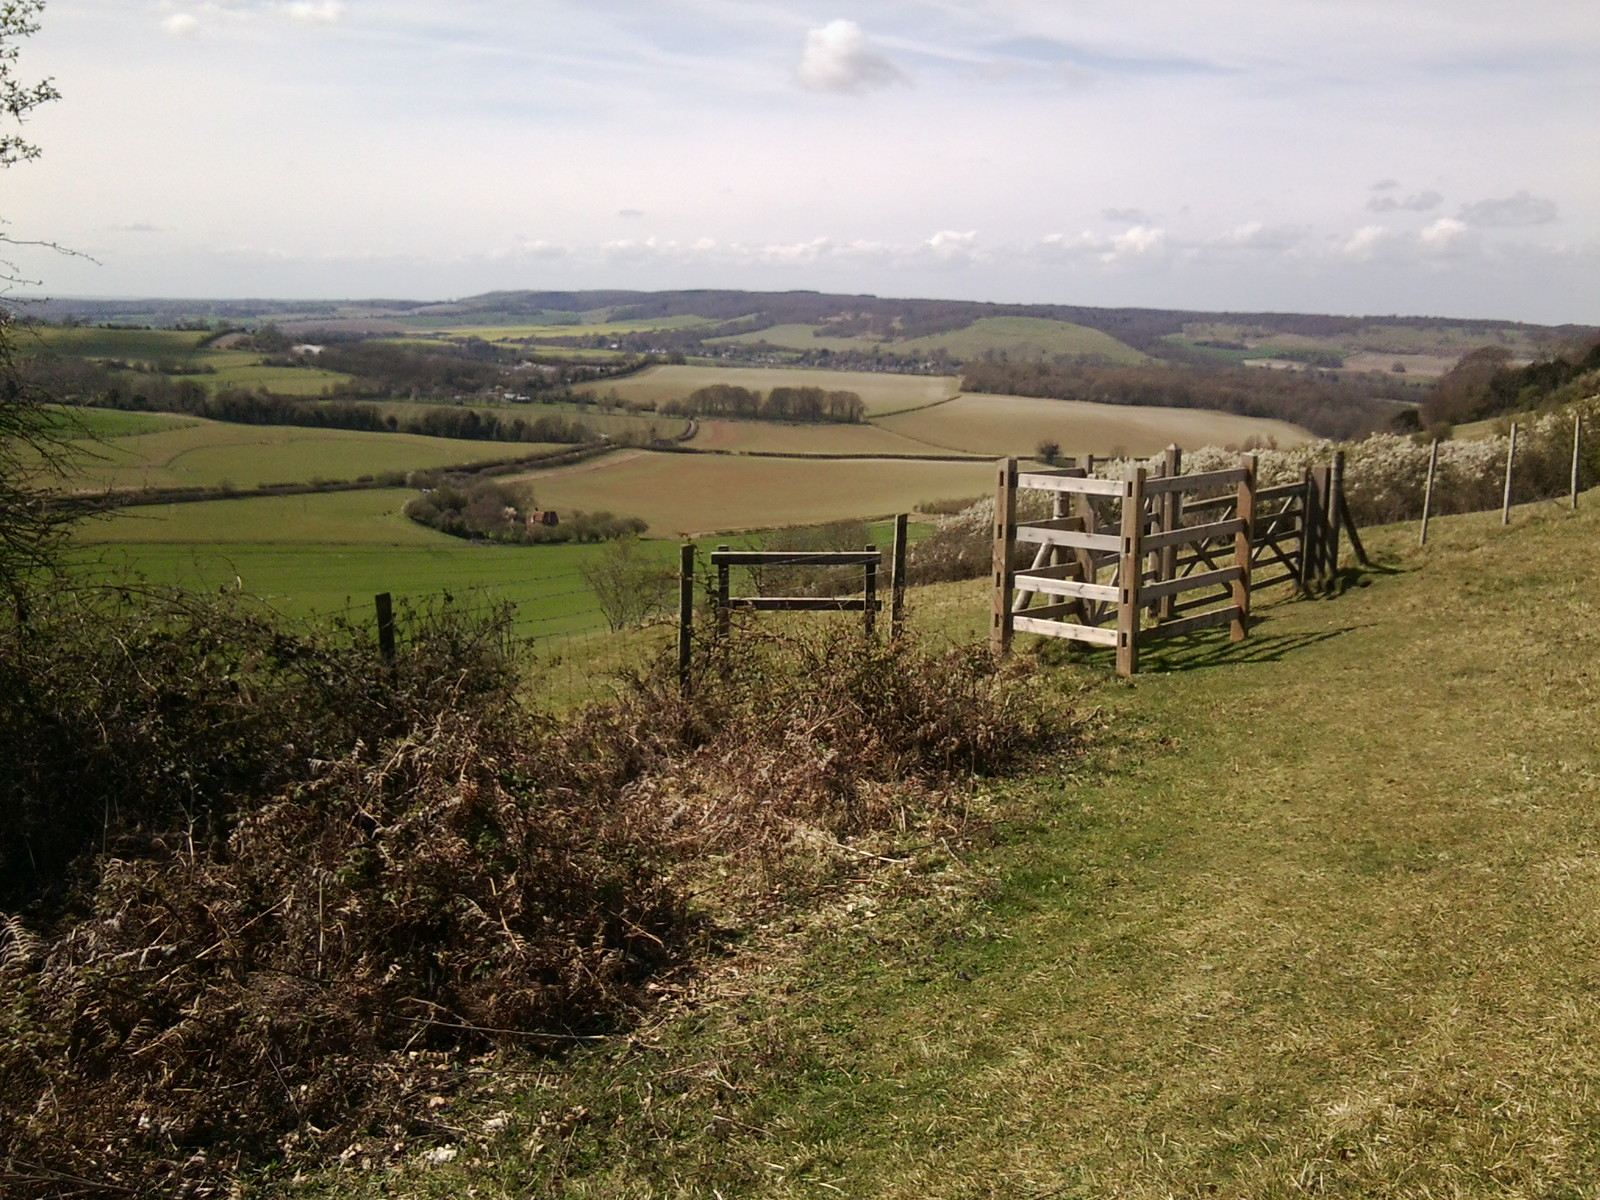 View from the escarpment after The Compasses Chilham Circular